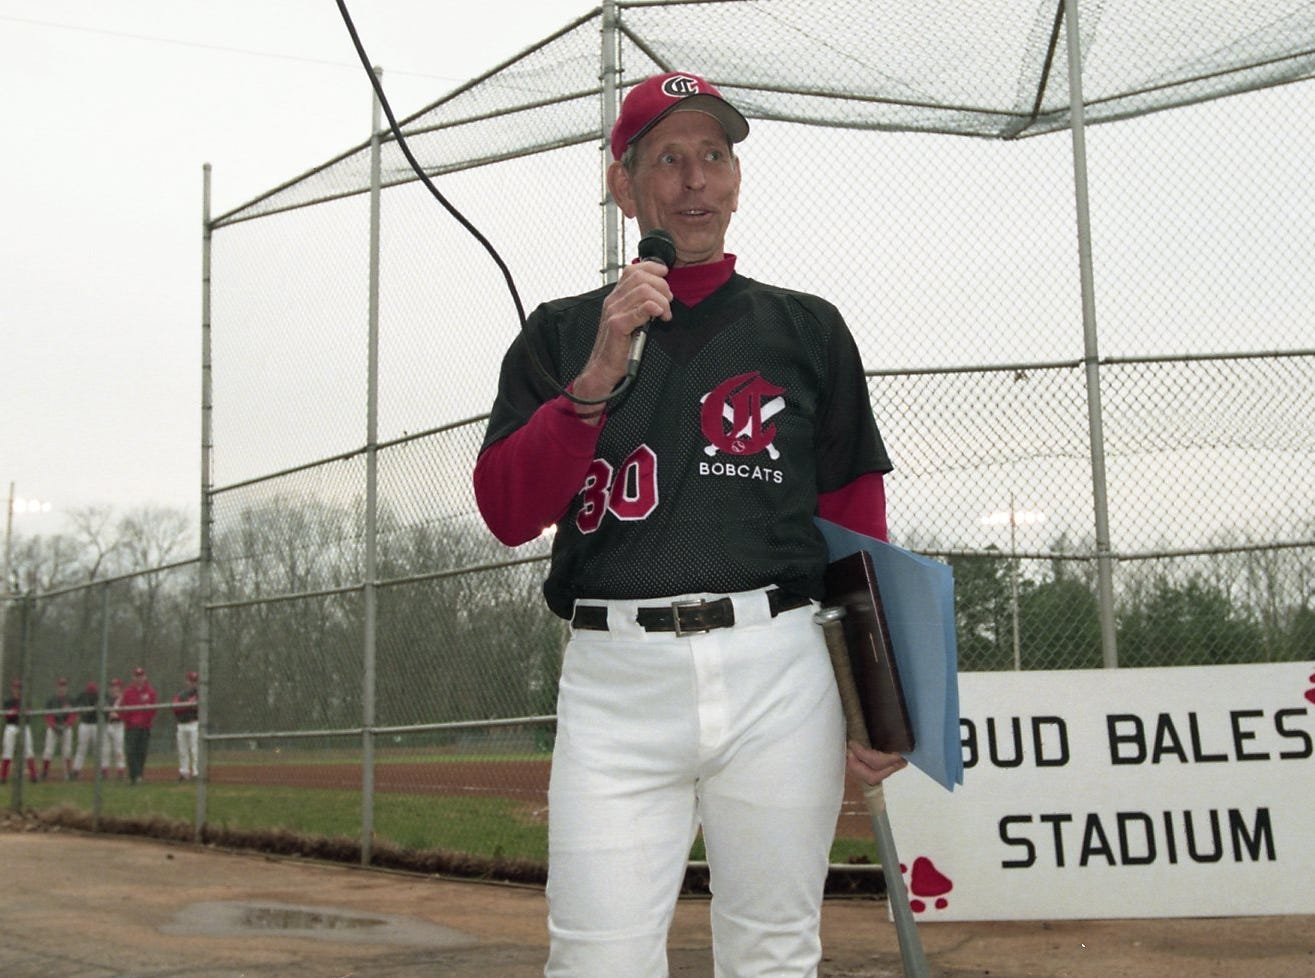 Central High baseball coach Bud Bales says a few words at a ceremony that named a stadium at the Fountain City Ball Park for him. March, 1997.